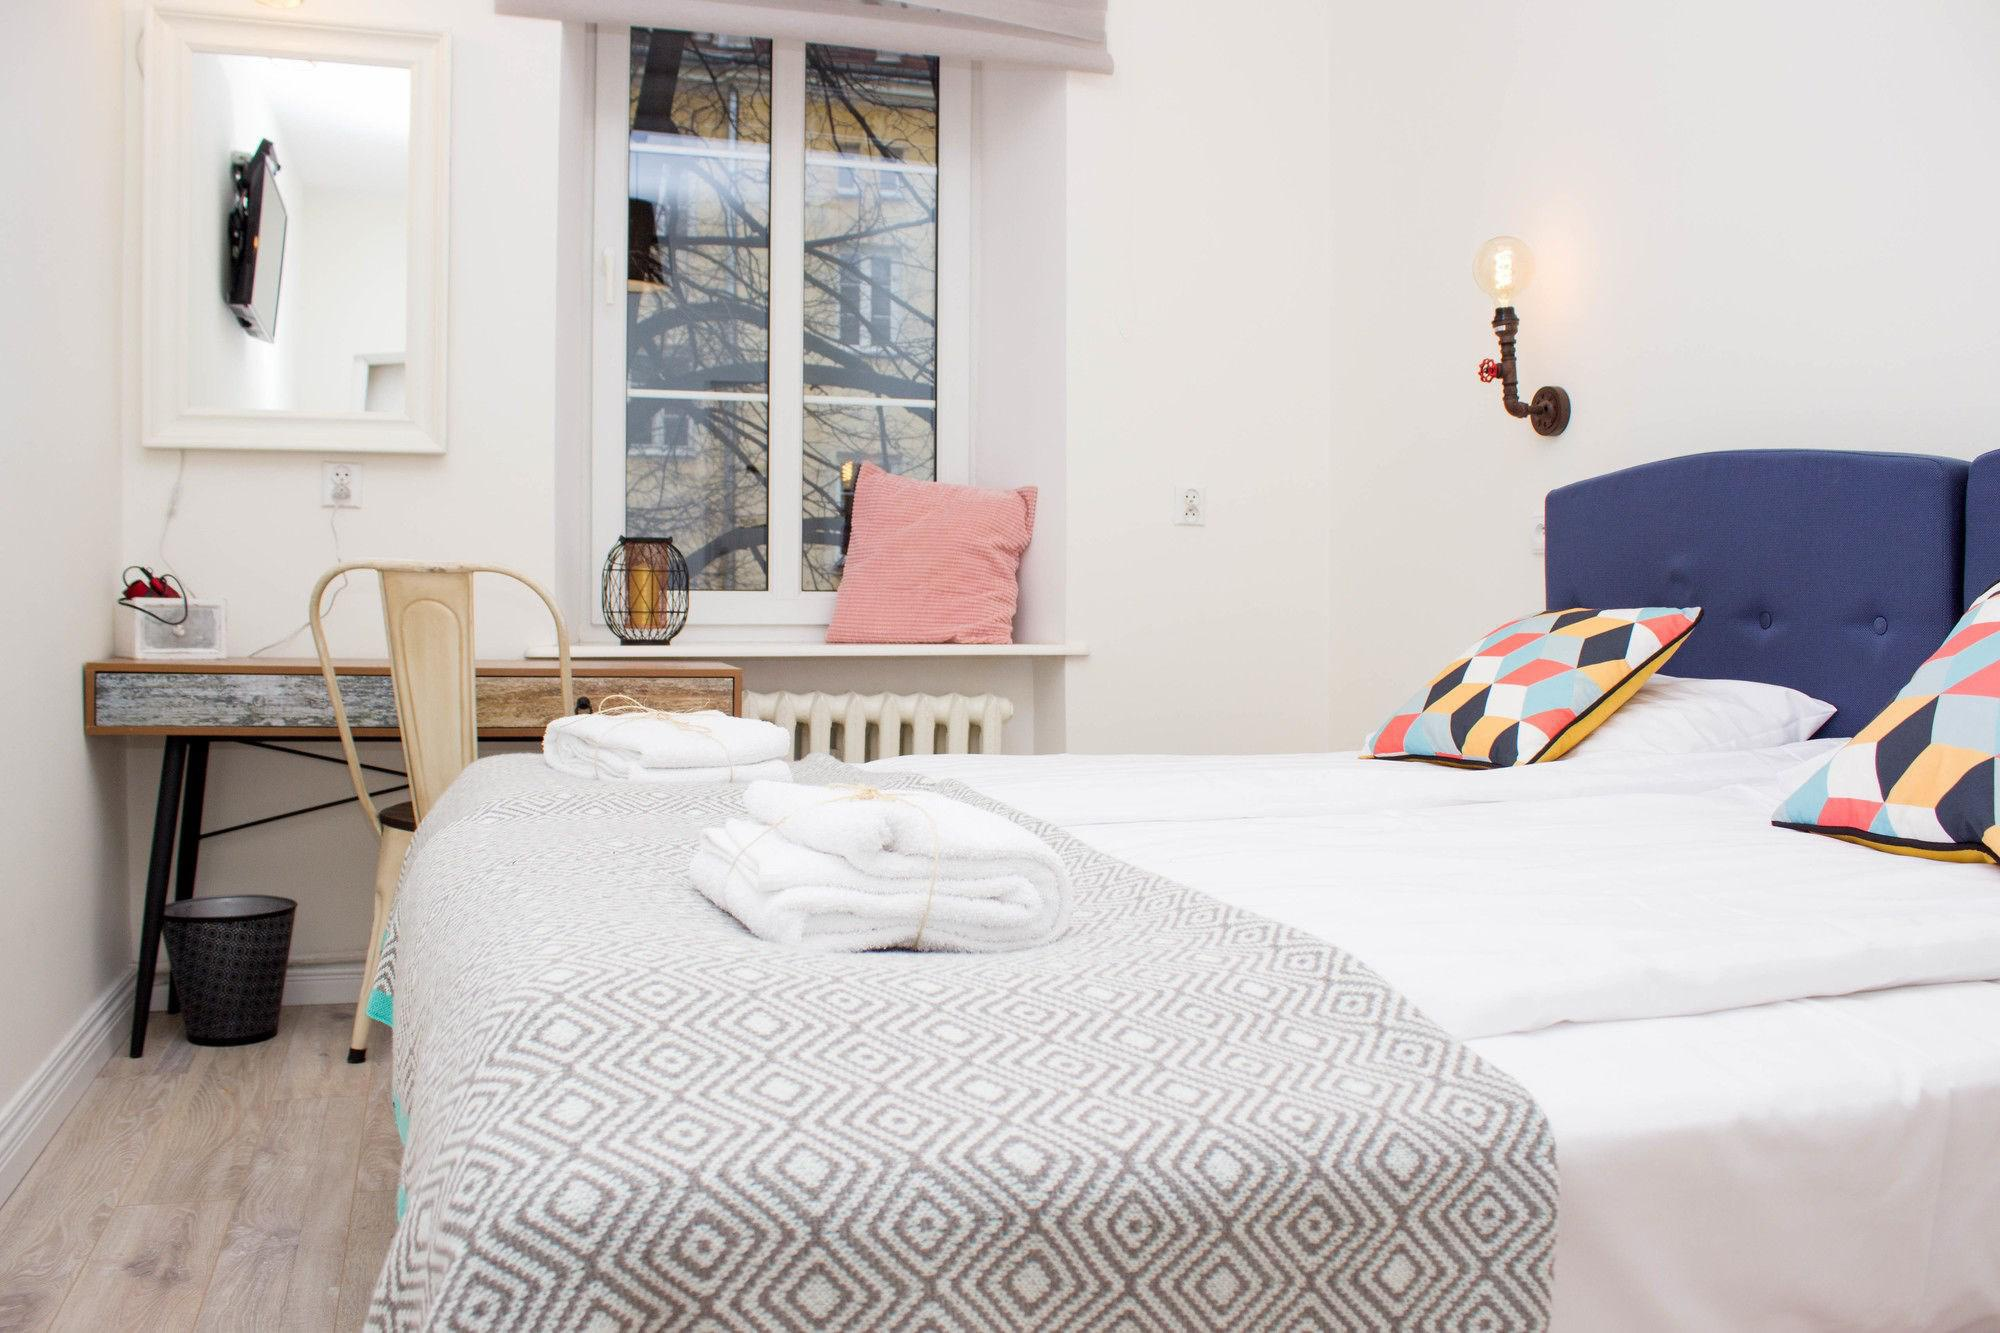 Chillout Hostel